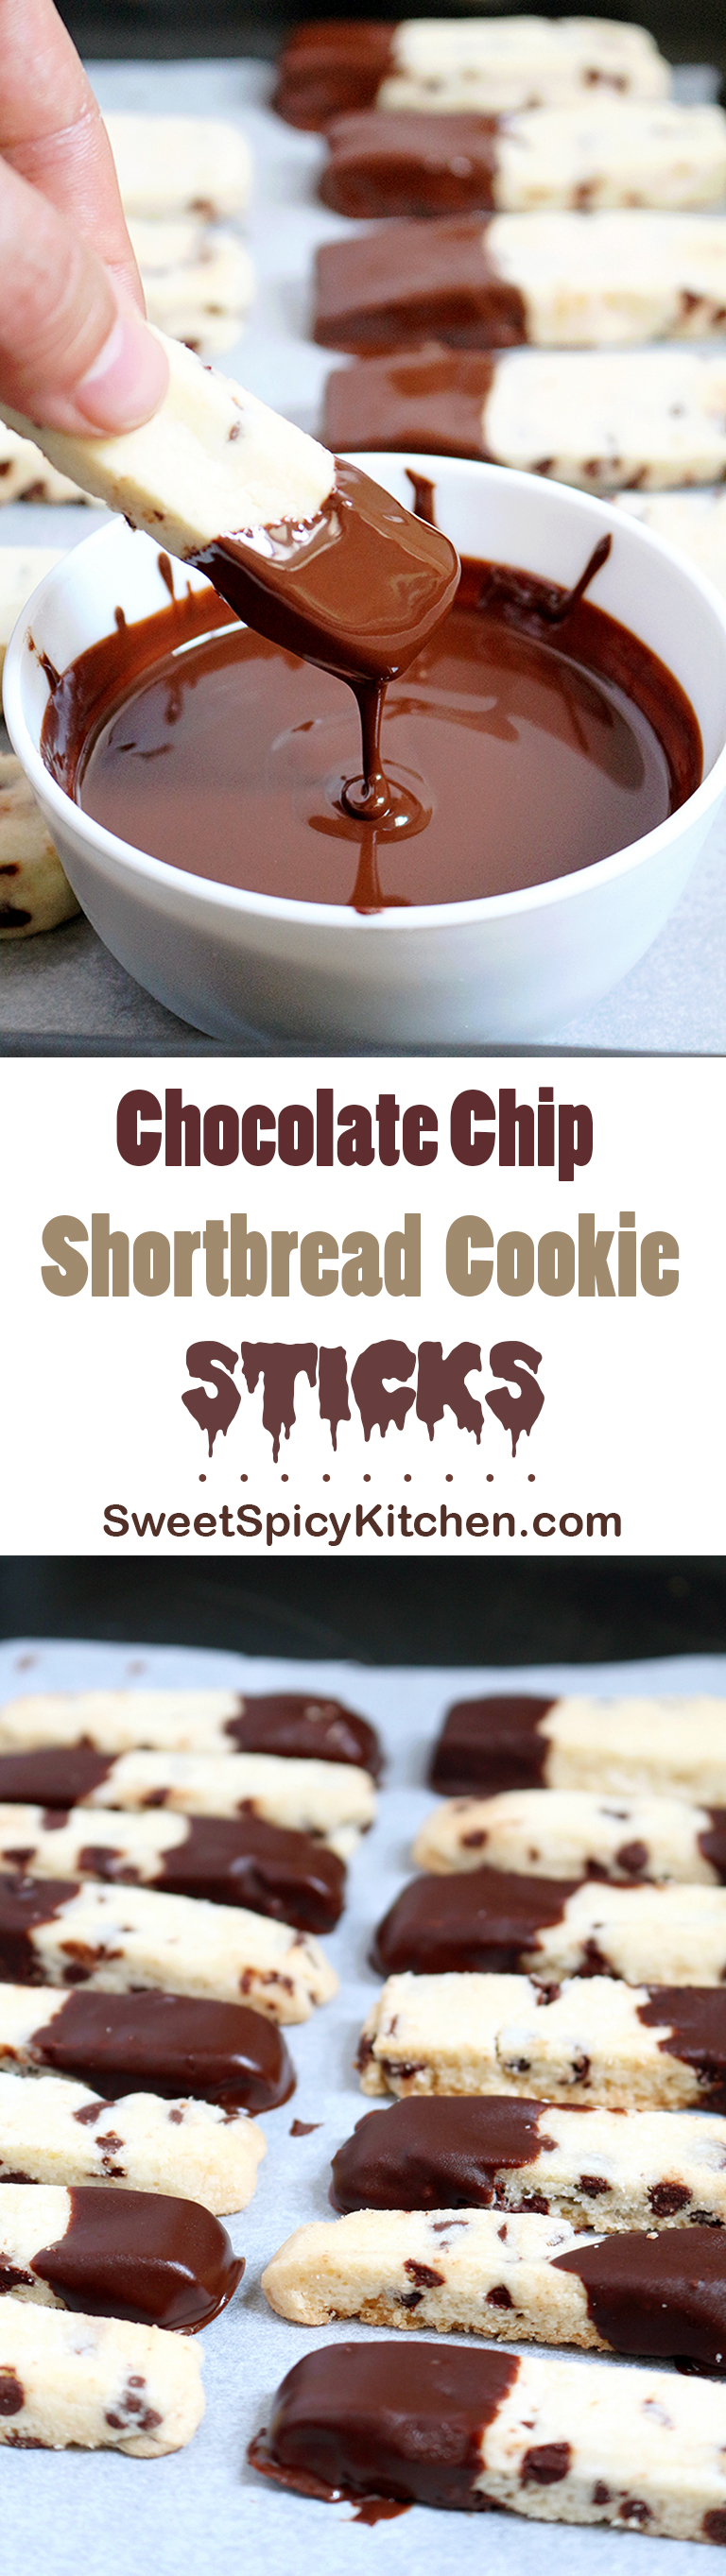 Chocolate Chip Shortbread Cookie Sticks